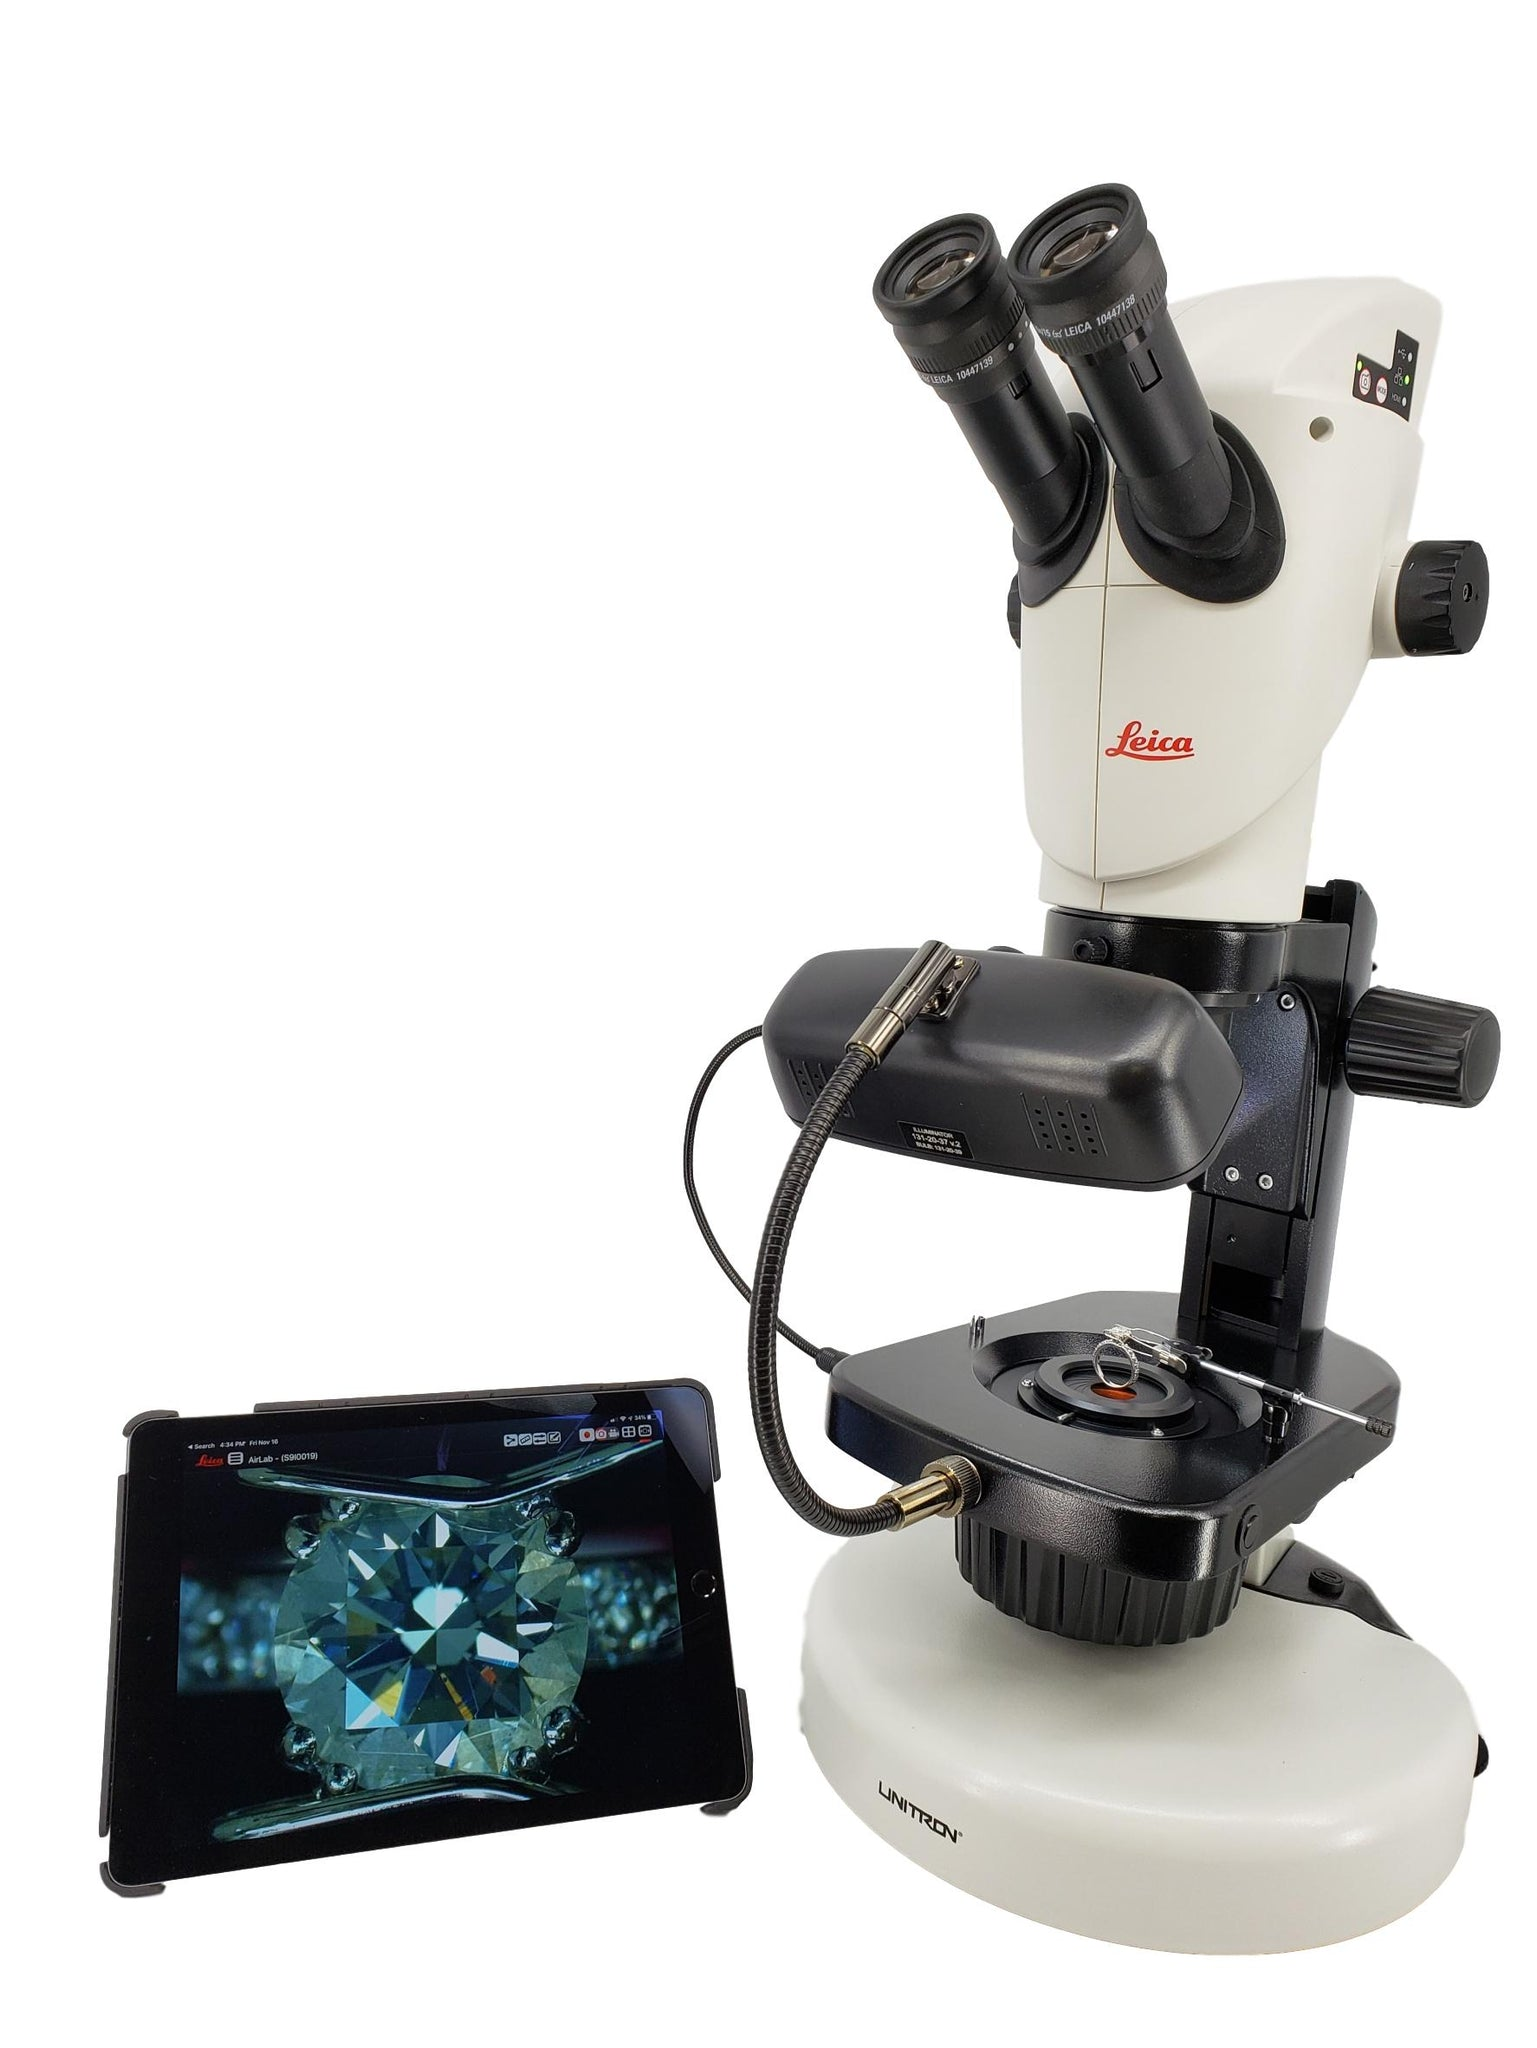 Leica S9i Gemological High Definition WiFi Jewelers Microscope